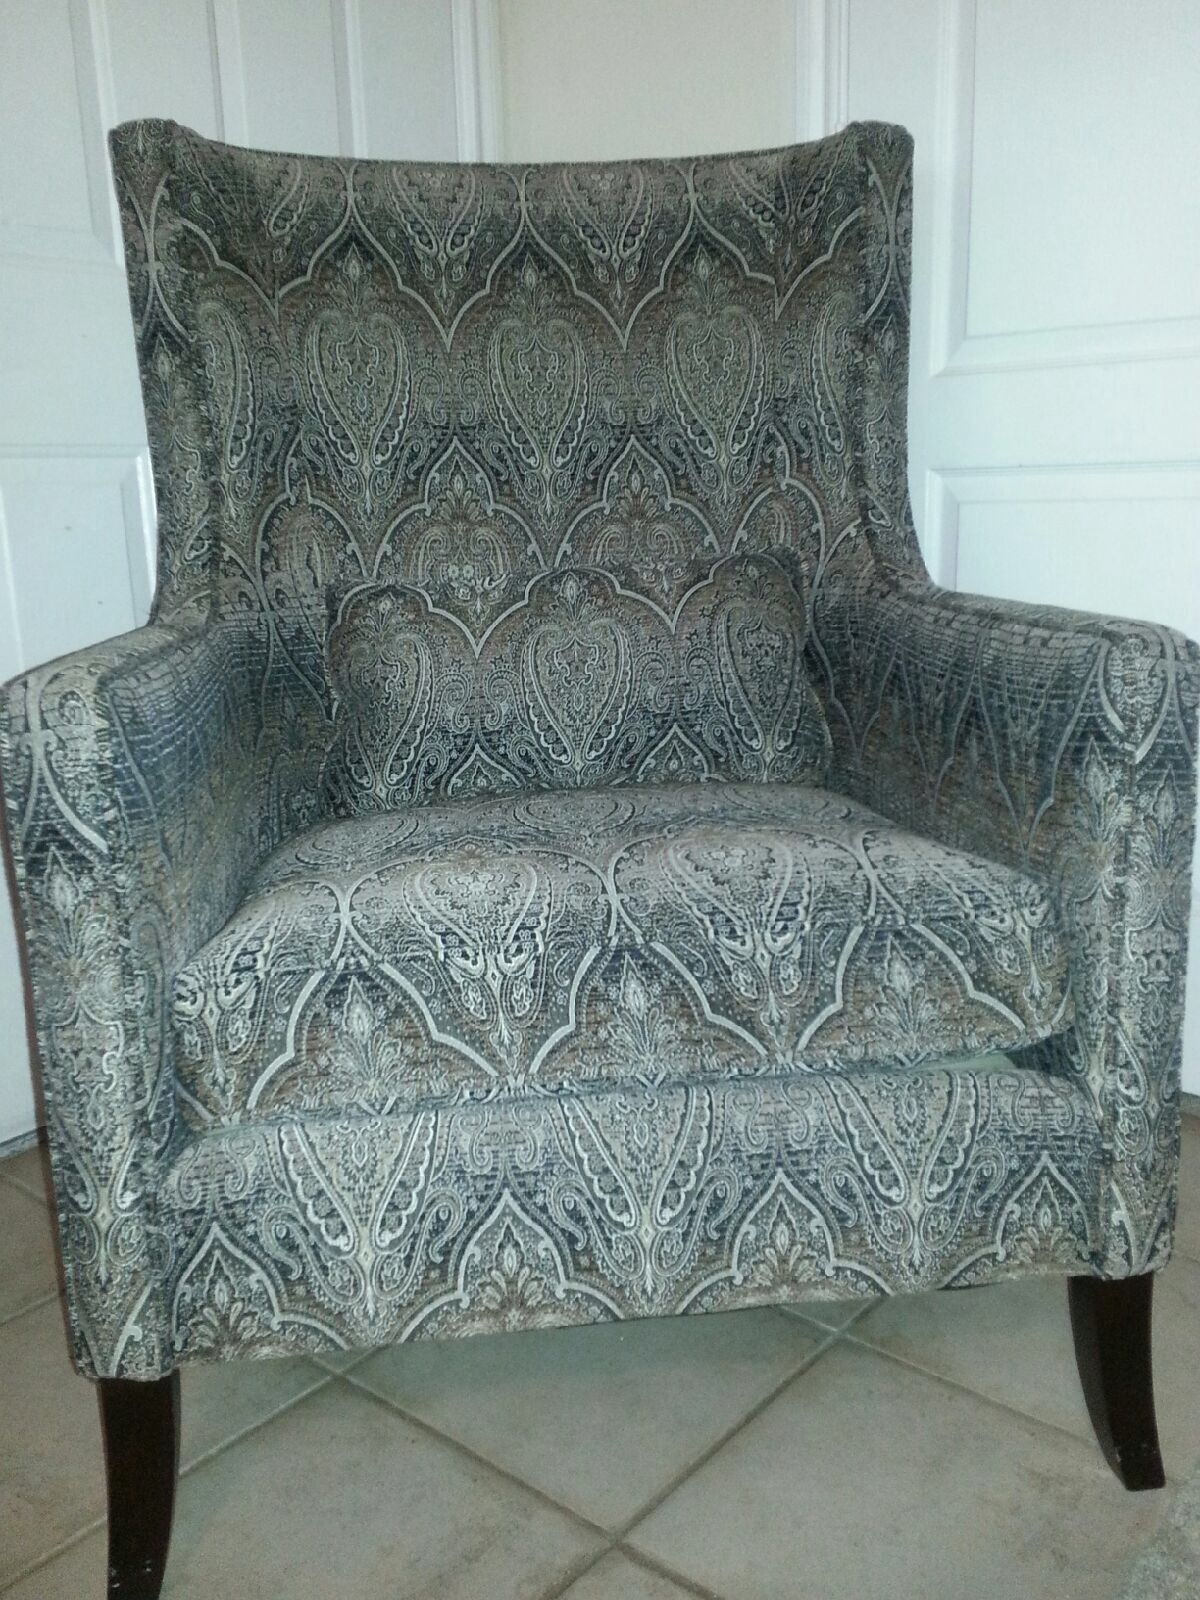 Accent Chair in NICEFURNITURE s Garage Sale in Mesquite TX for